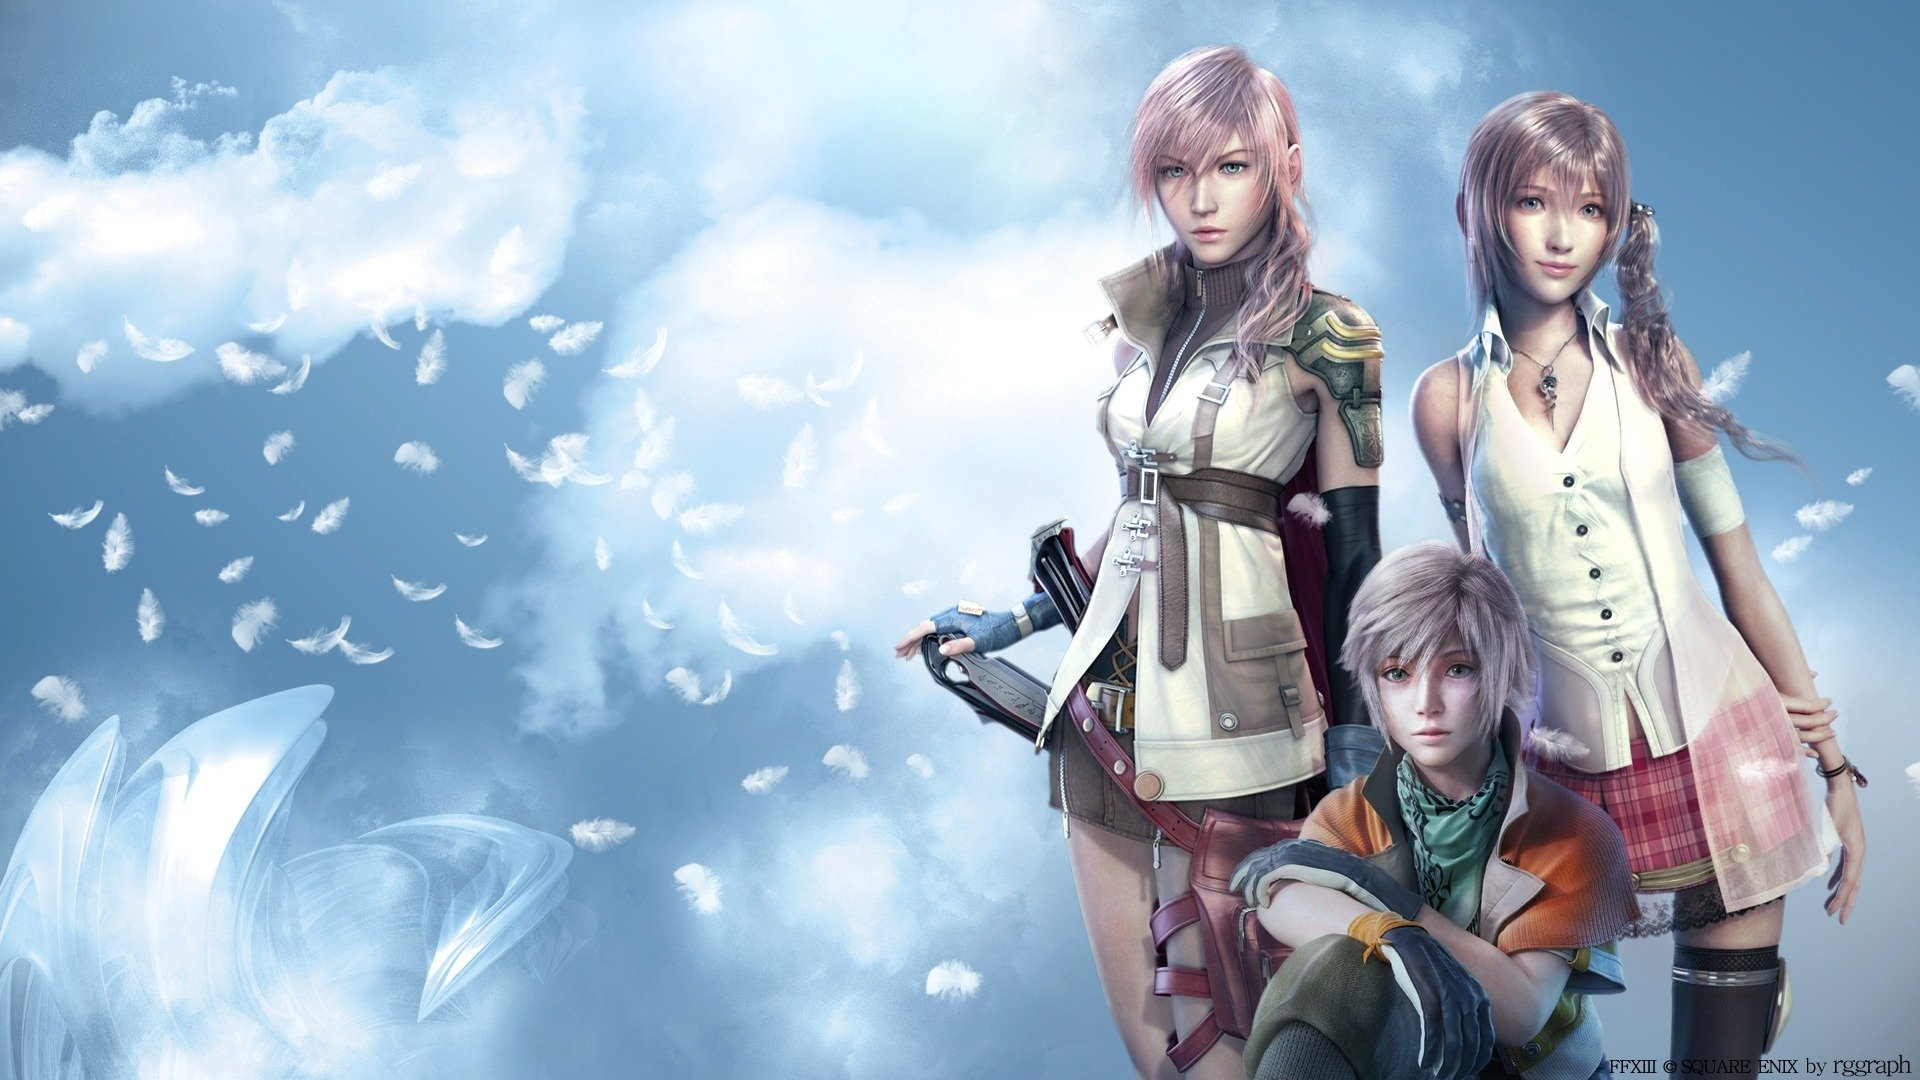 final fantasy xiii classic game desktop wallpaper download final 1920x1080